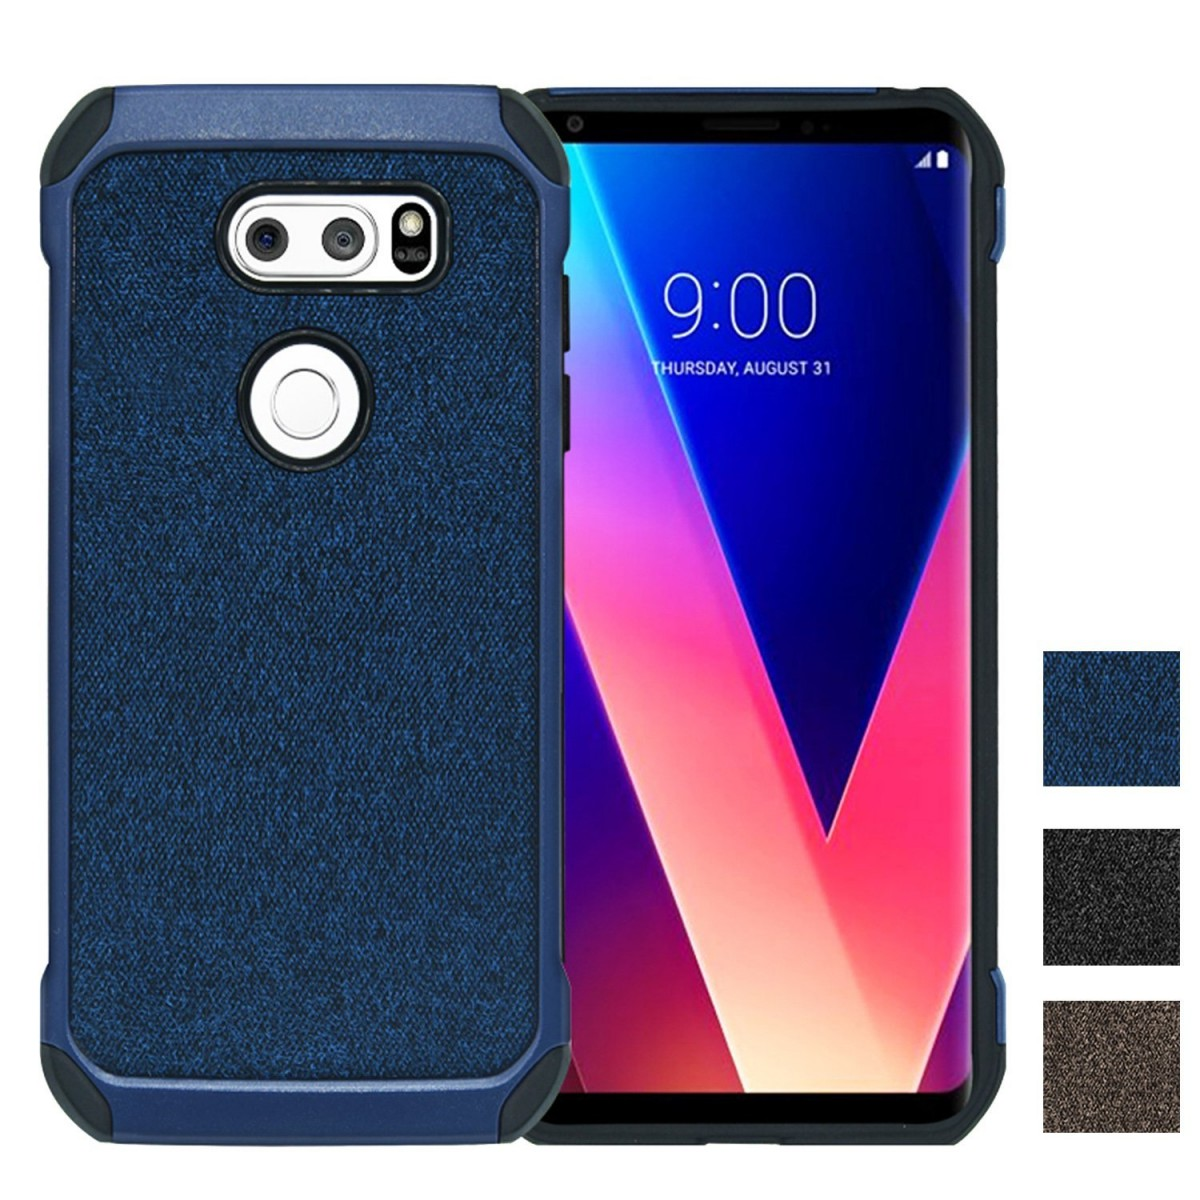 size 40 1e5be 518b9 LG V30 Case, YSAGi Ultra Slim Thin Dual Layer with Soft Cloth Pattern,  Heavy Duty Protection Shock-Absorption and Anti-Scratch Four-Corner Airbag  ...